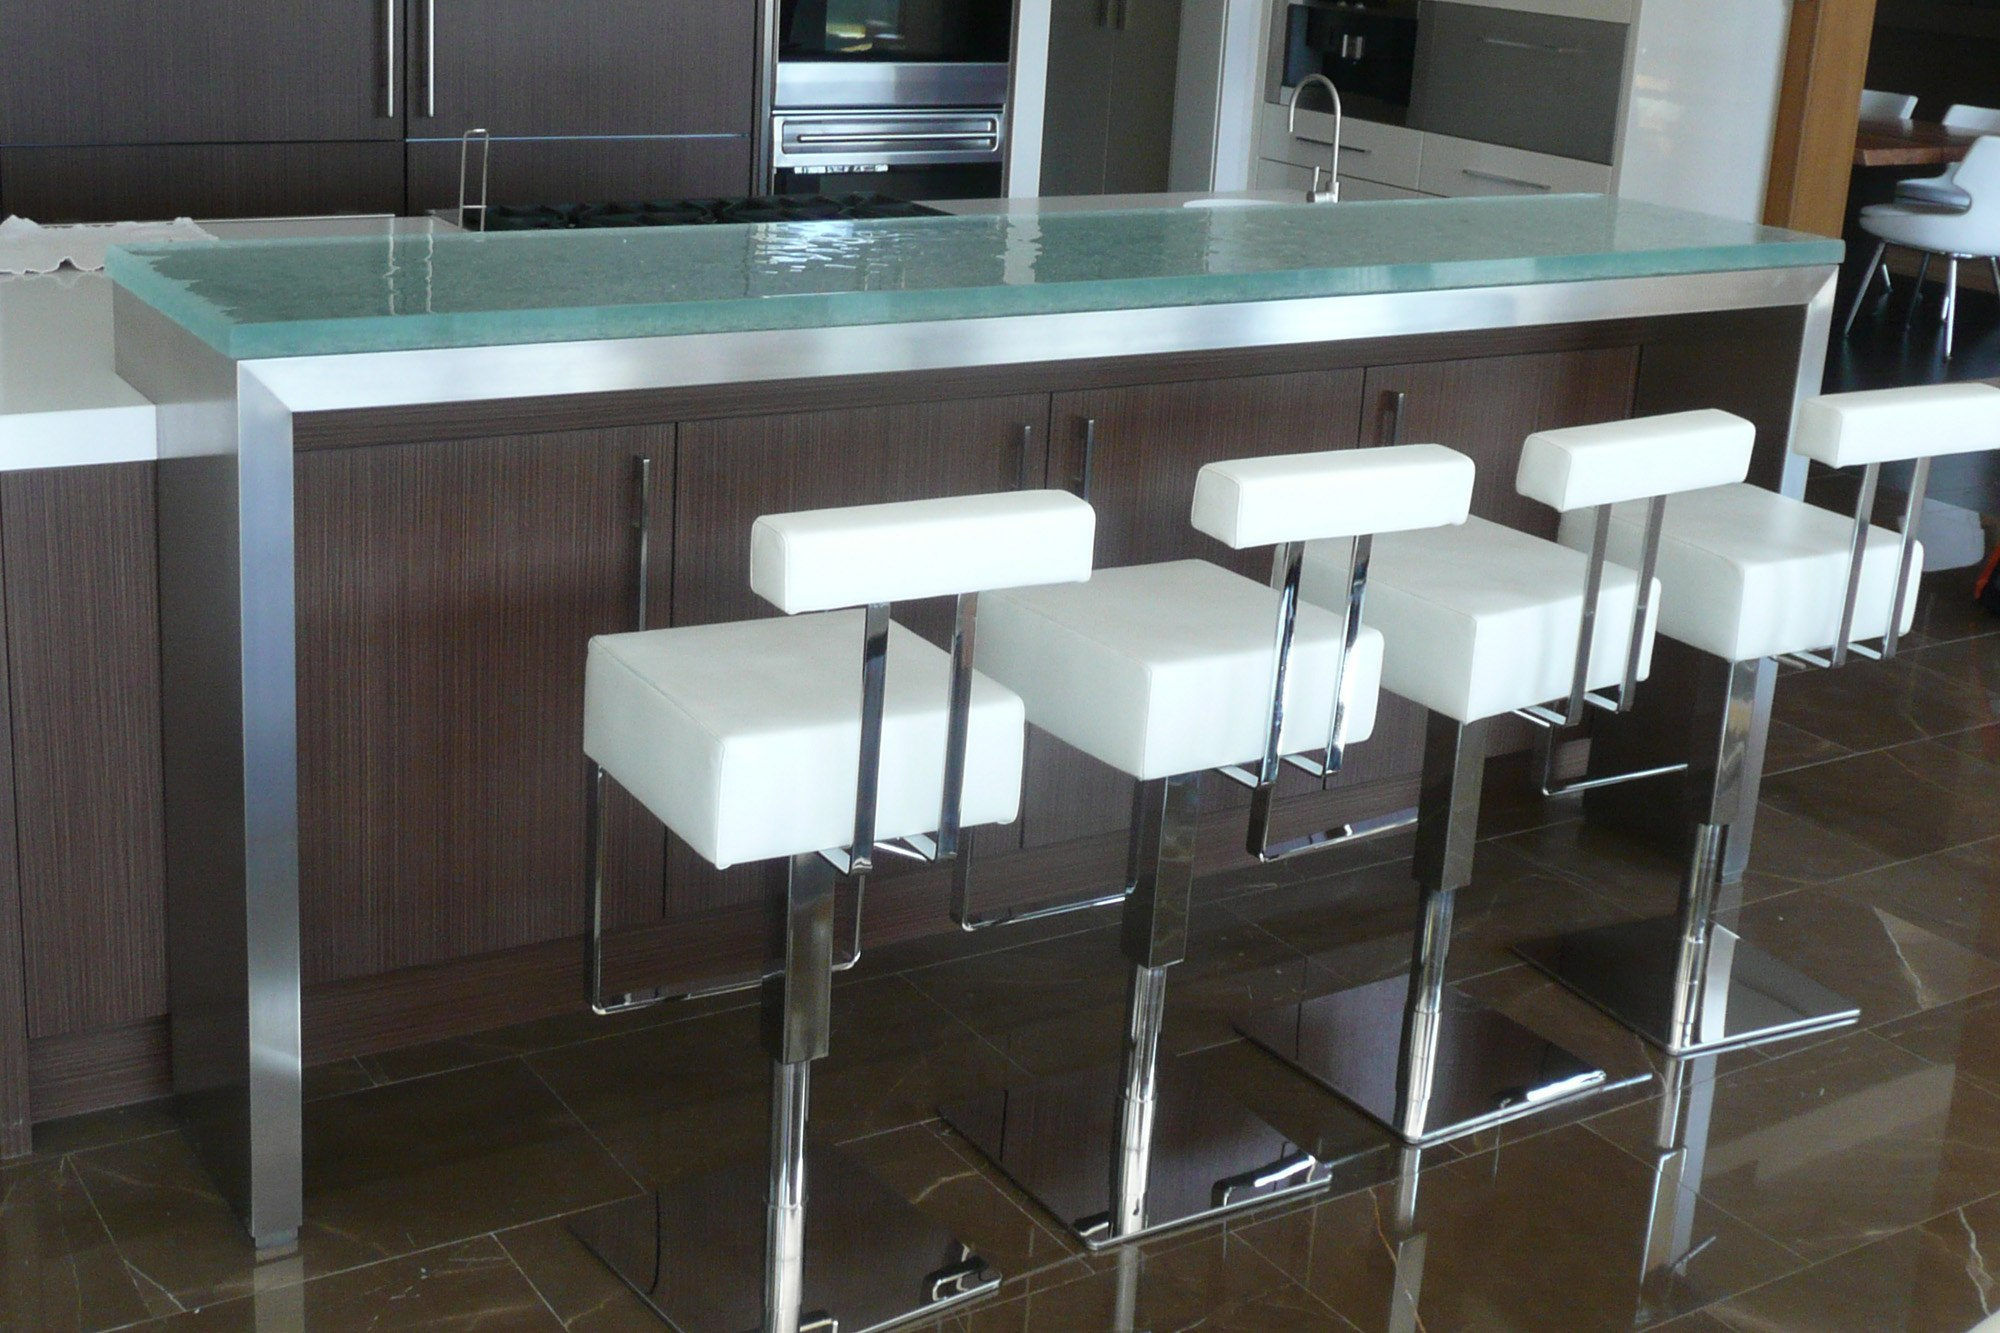 The Ultimate Luxury Touch For Your Kitchen Decor - Glass Countertops homesthetics (11)